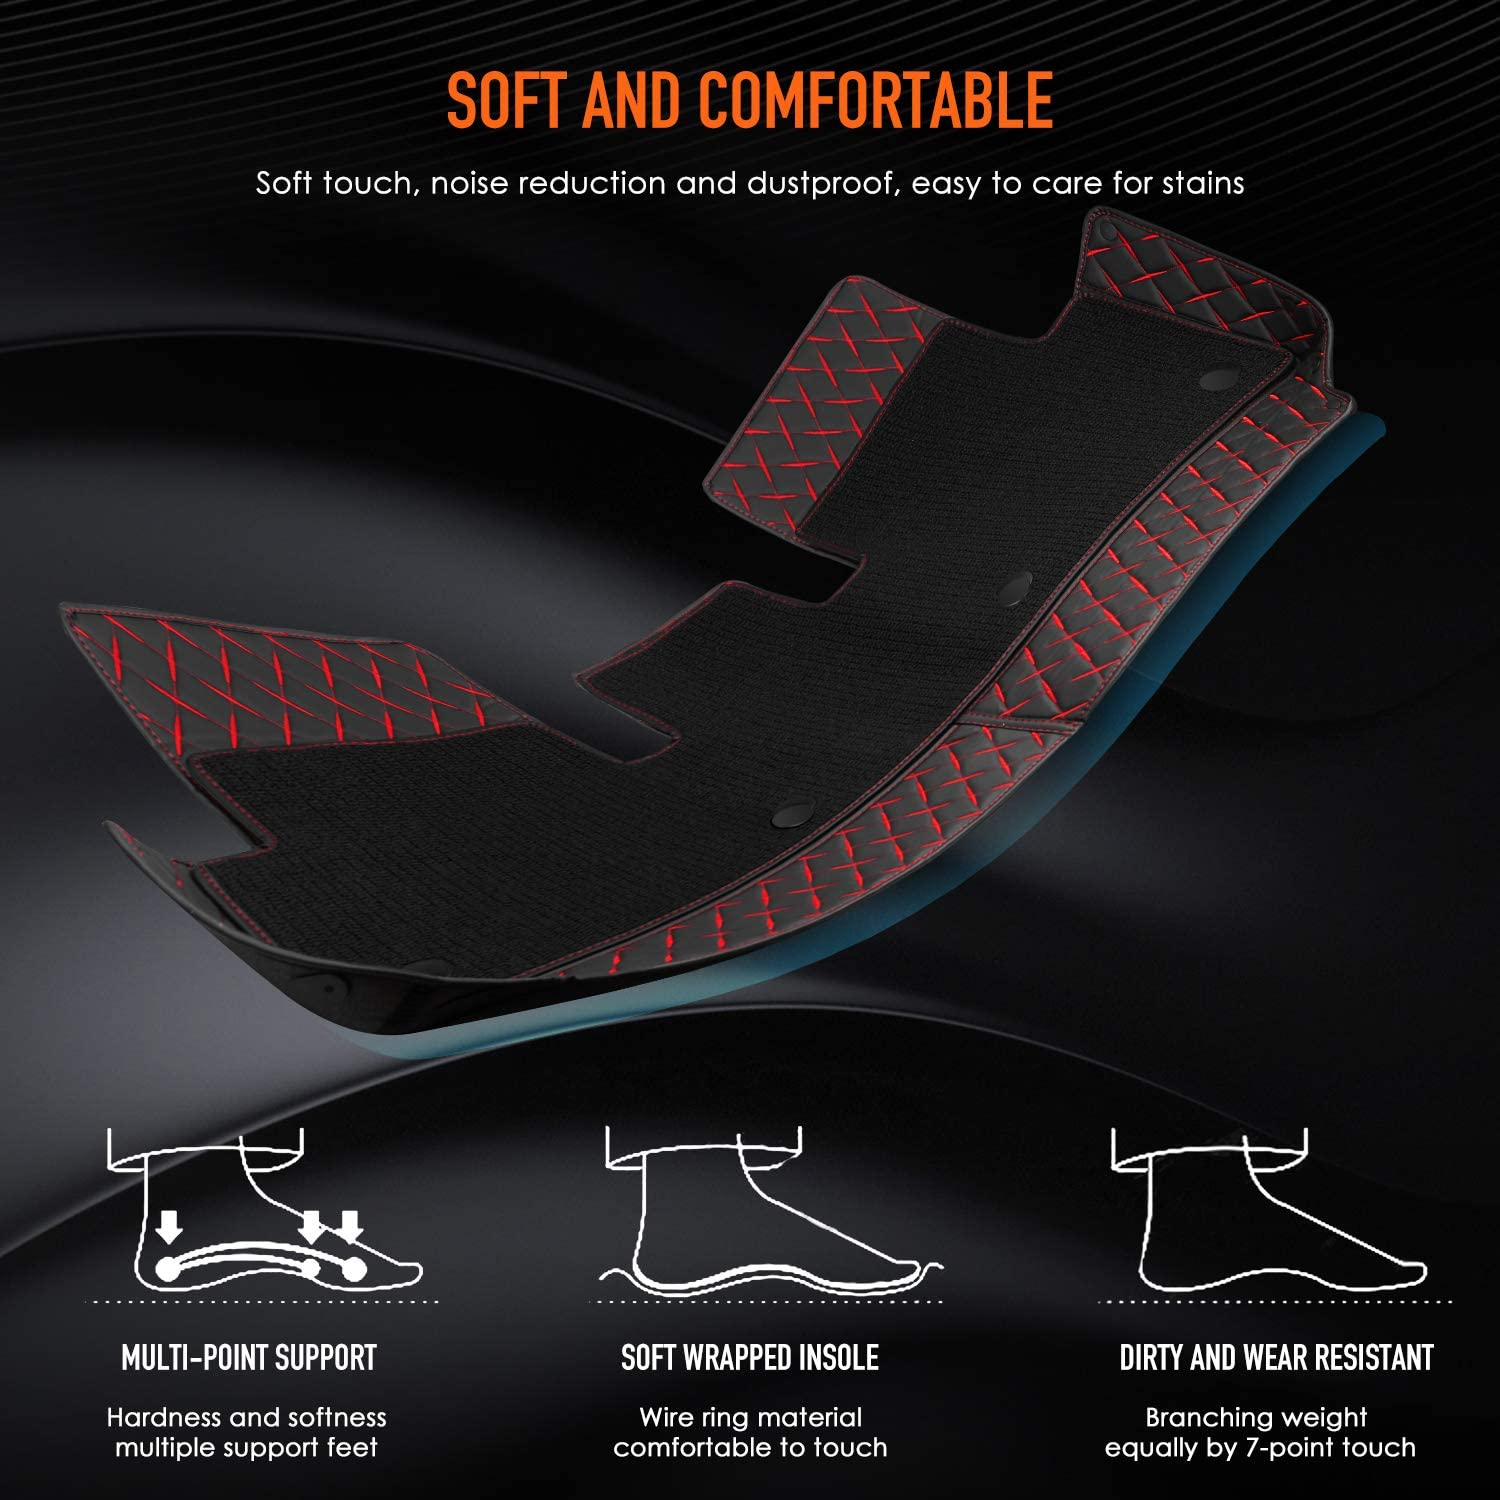 ZuTaBao Full Covered Floor Mat Luxury XPE Leather Waterproof Vehicle Floor Carpet Fit for Tesla Model 3 Double Layer, Black 1th